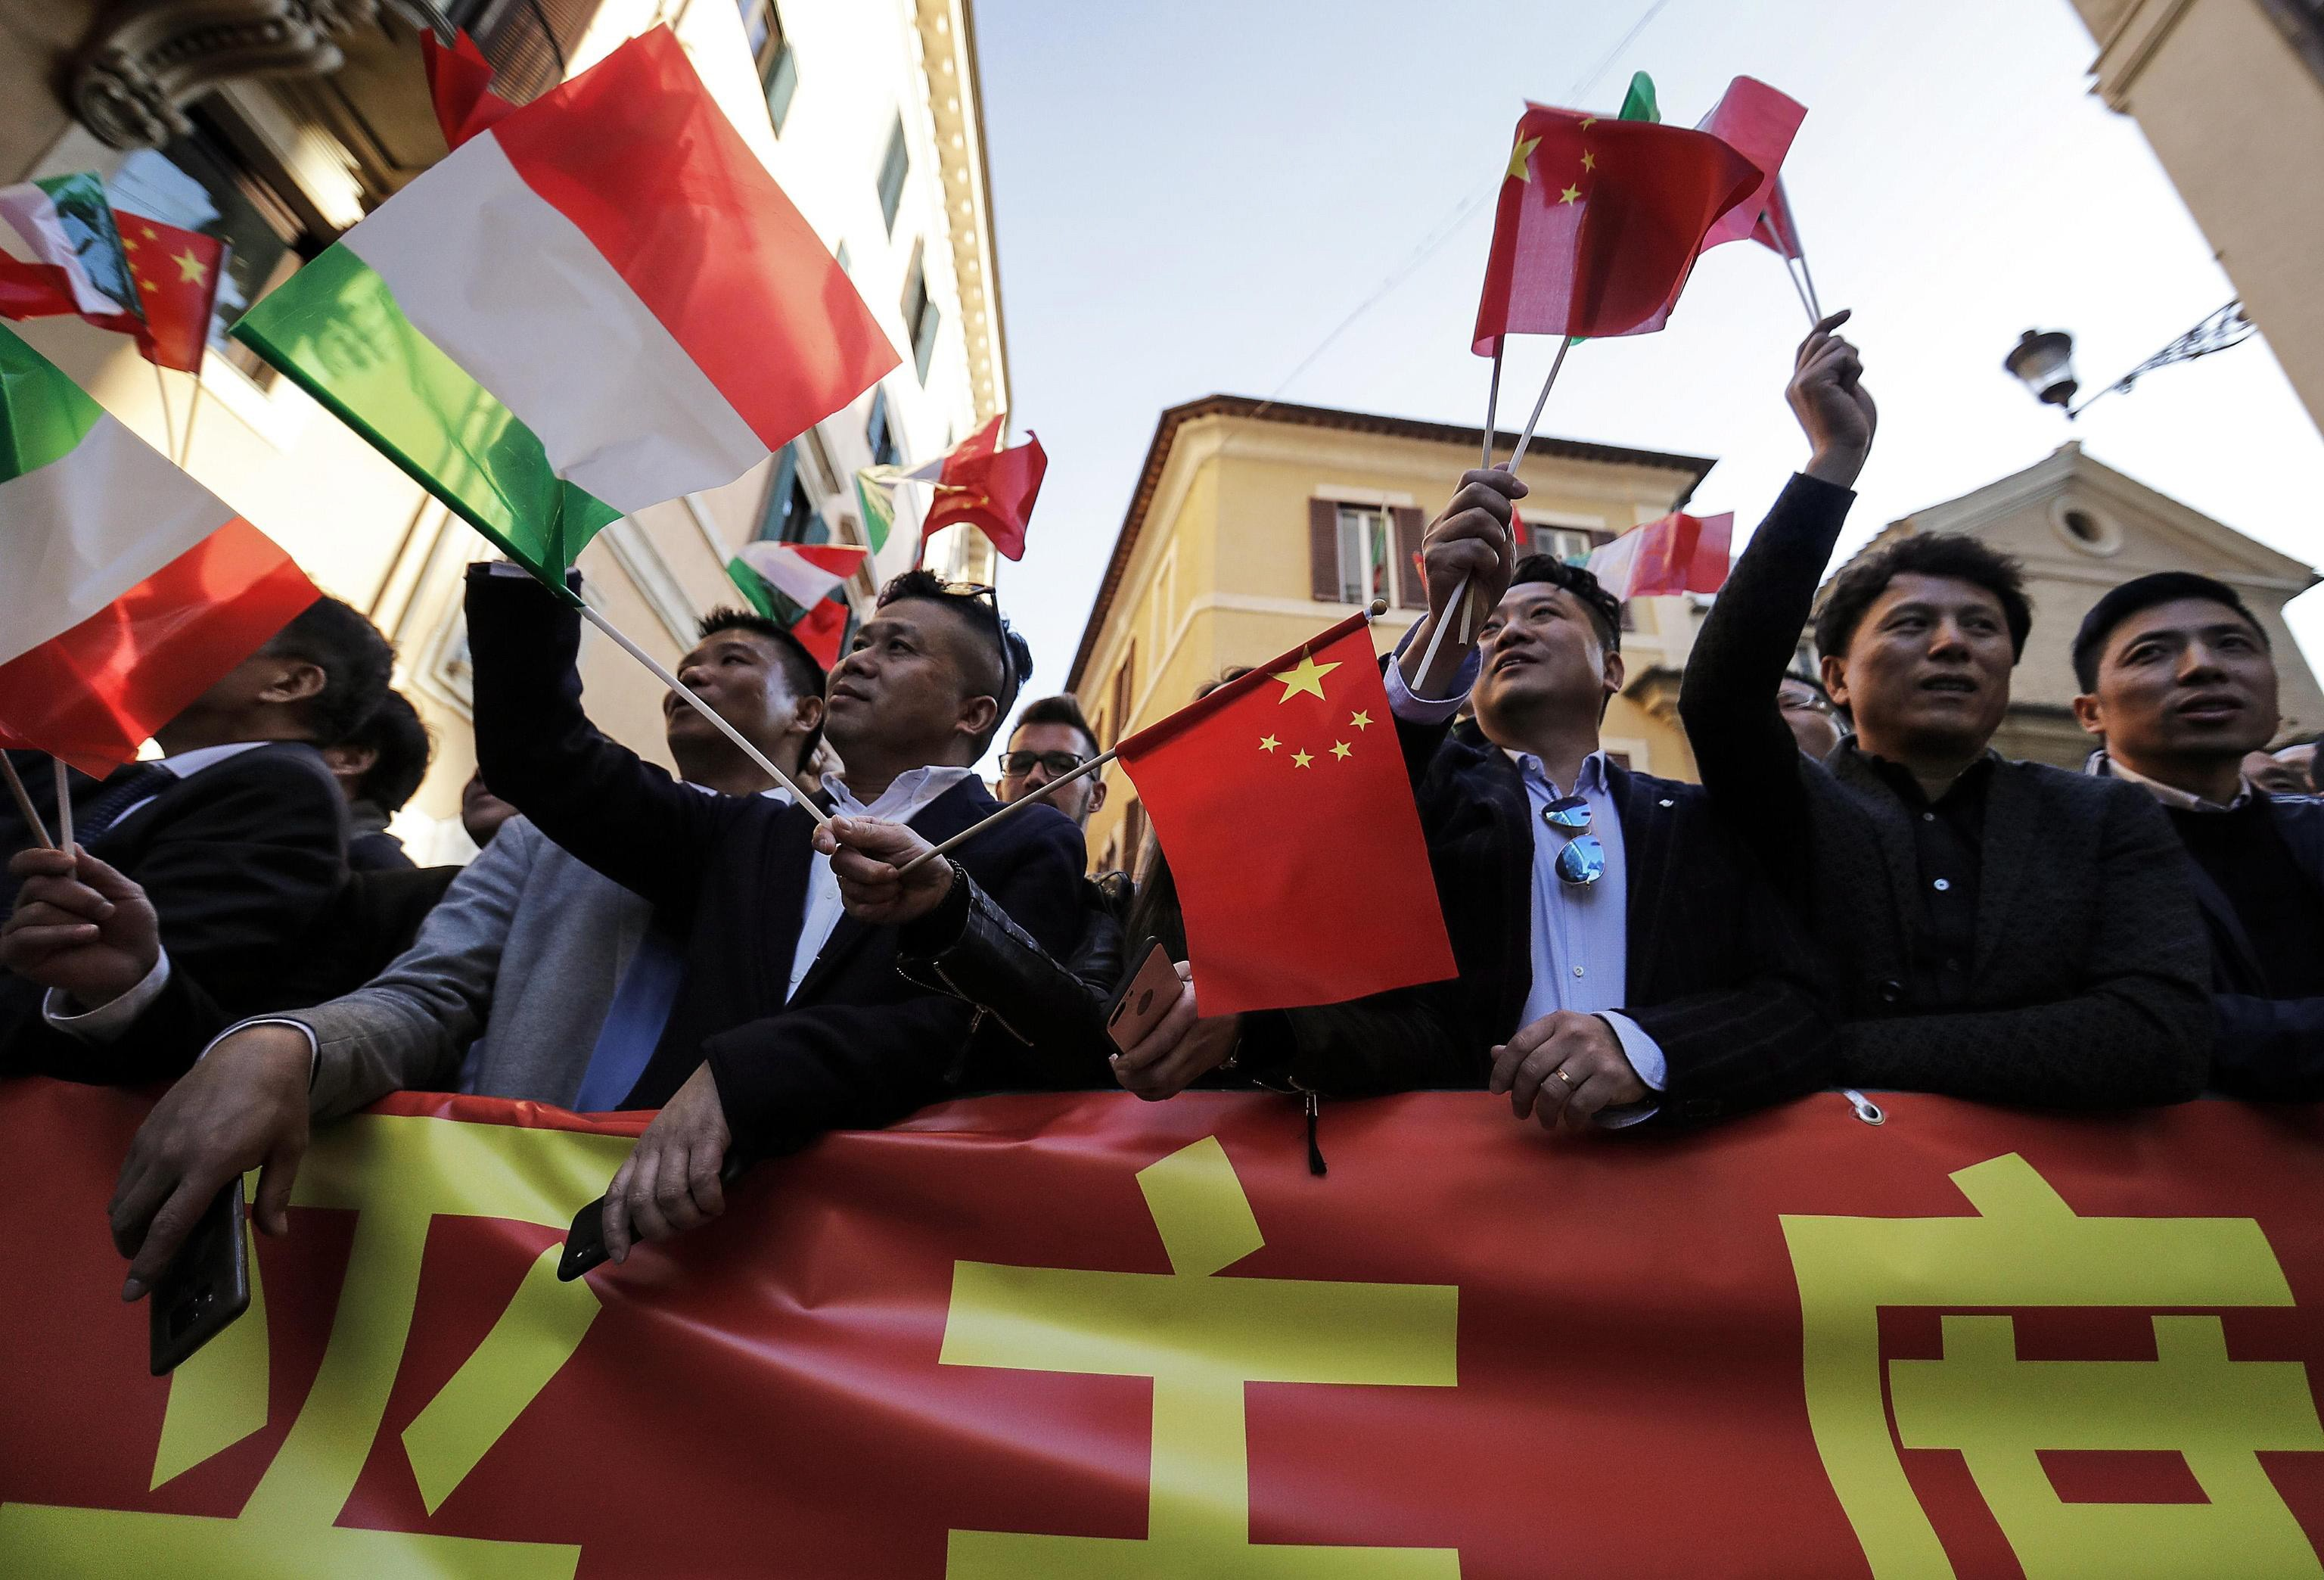 Italy's move to join New Silk Road may see European Union tighten